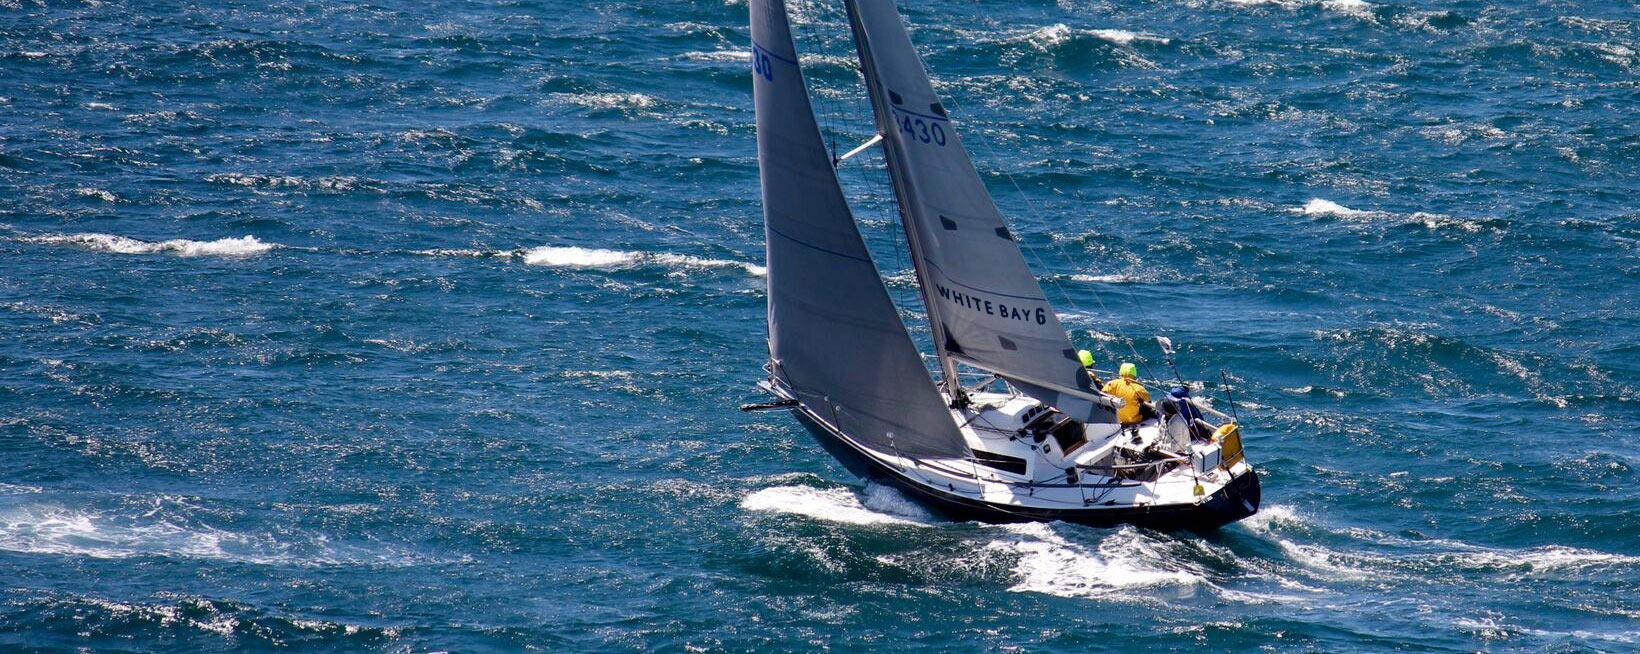 White Bay 6 Azzurro Yacht Racing